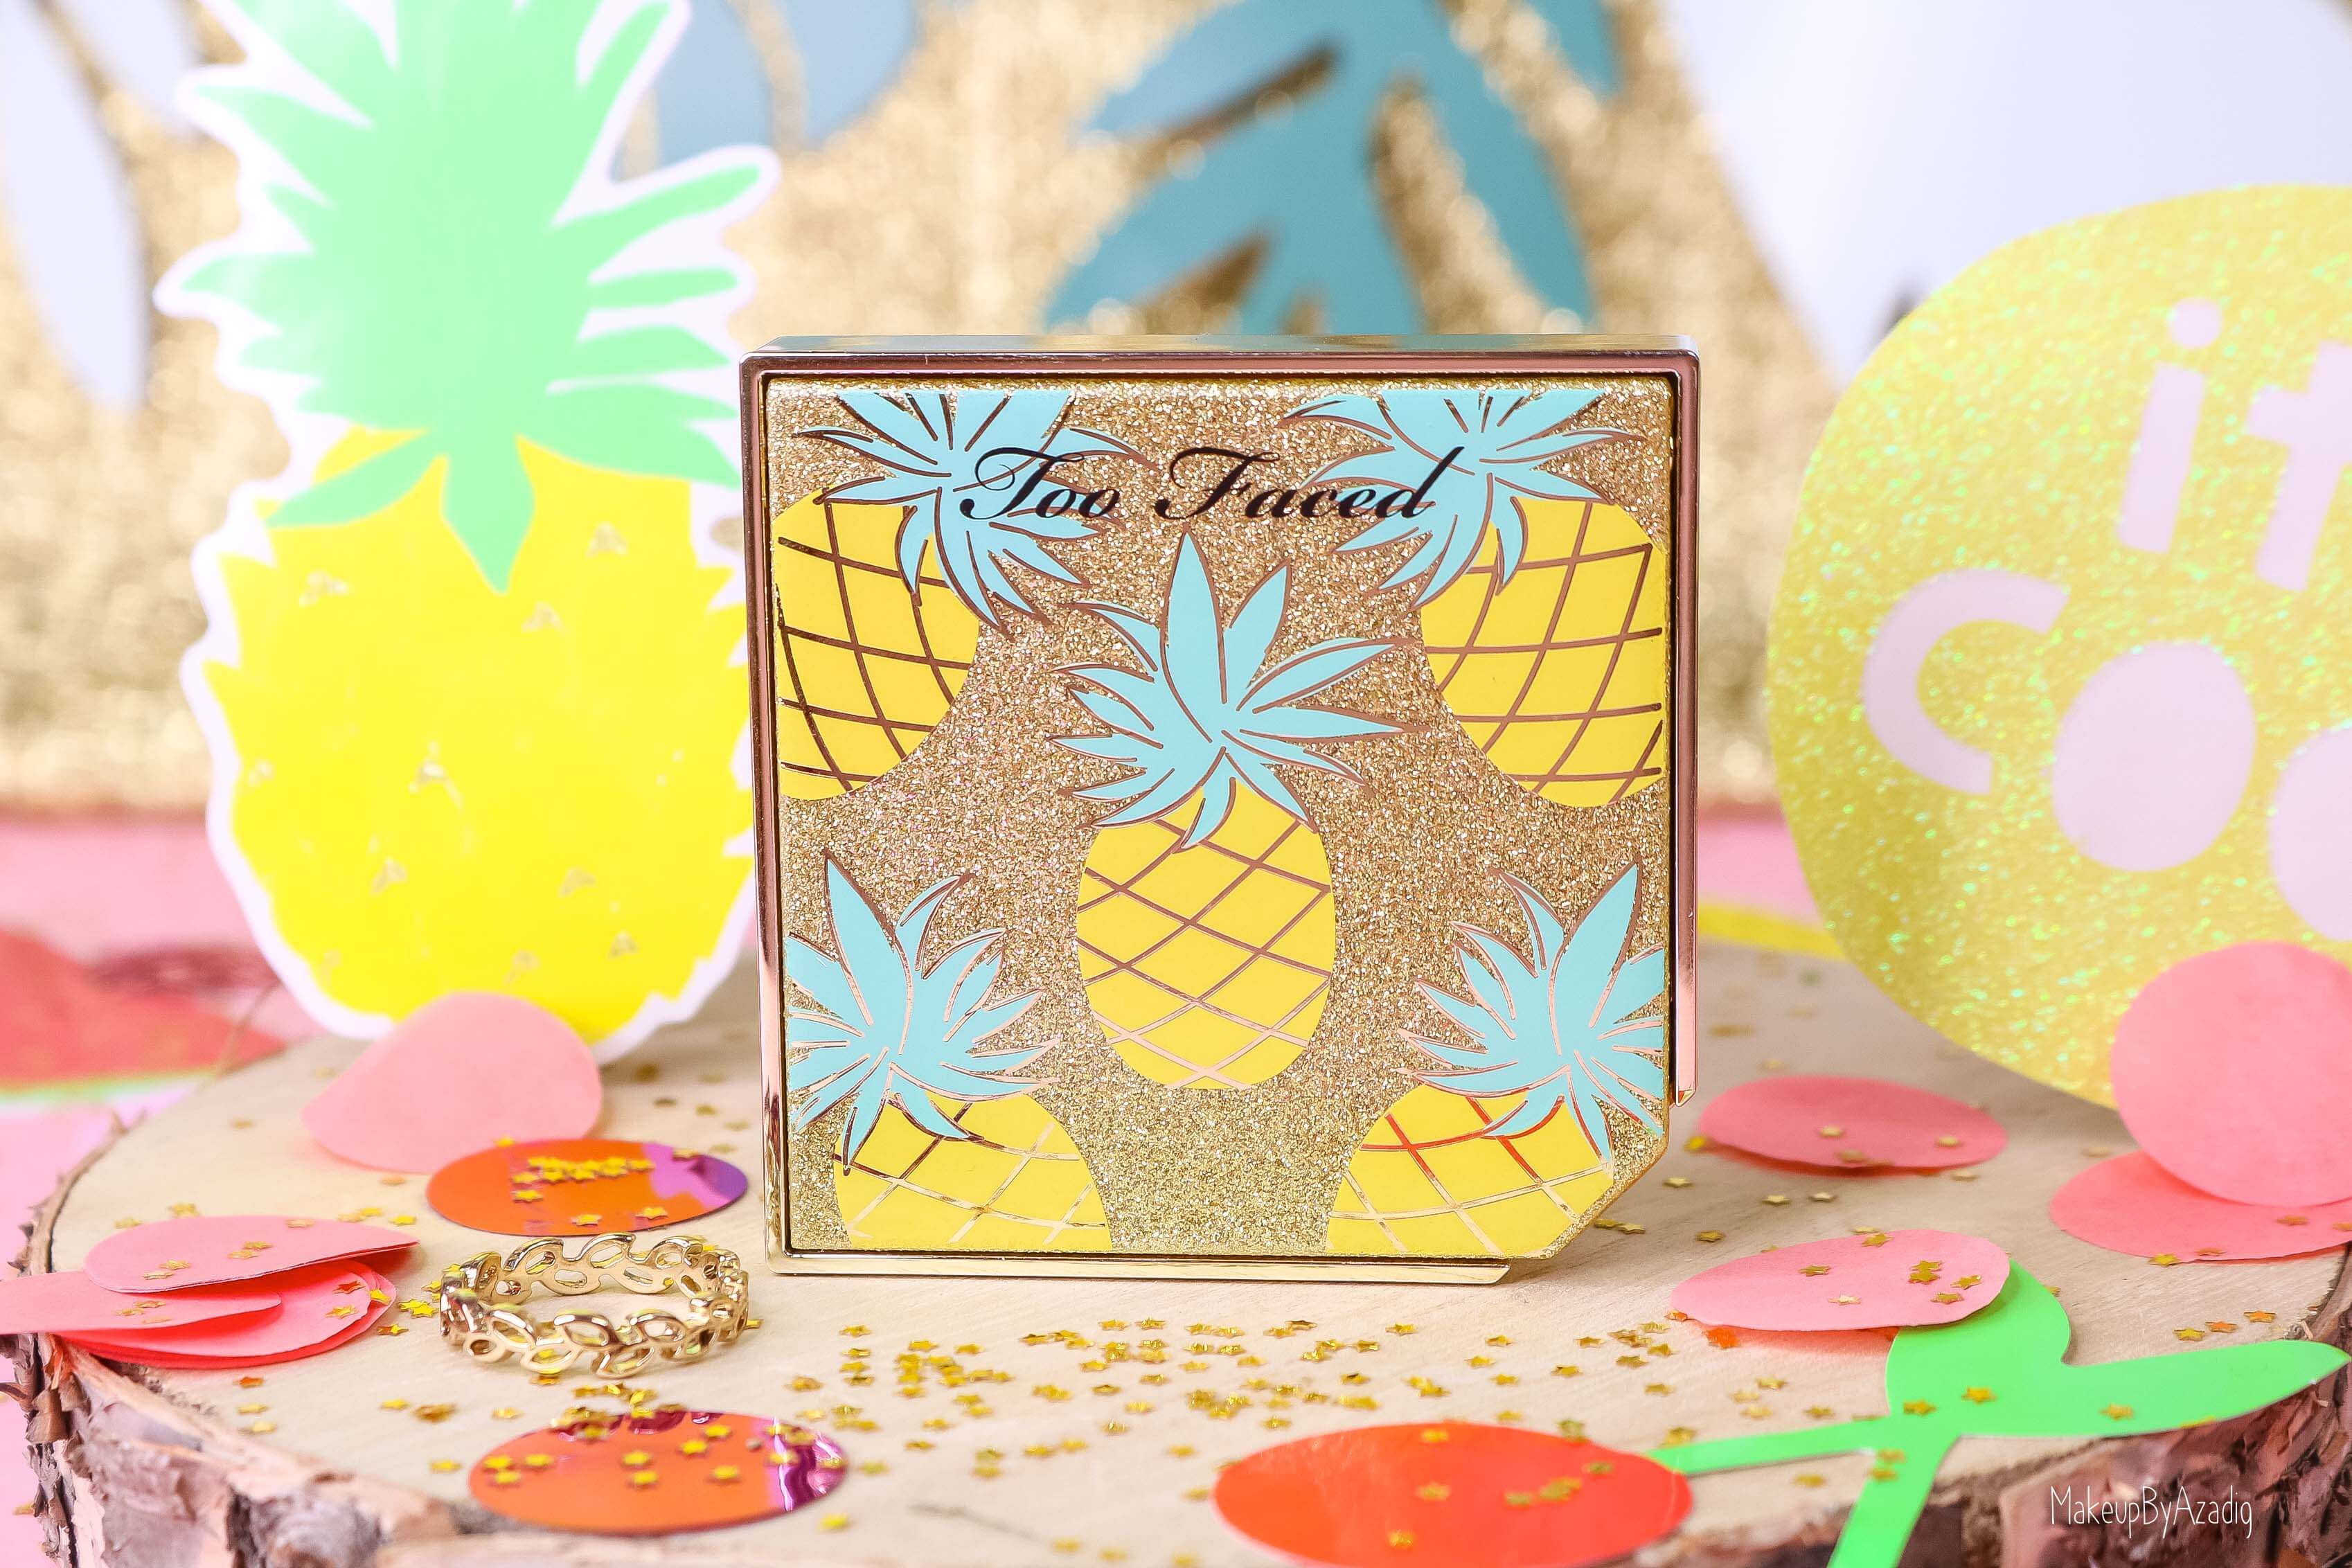 revue-collection-tutti-frutti-too-faced-bronzeur-highlighter-pineapple-paradise-sun-sephora-france-makeupbyazadig-swatch-avis-prix-ananas-packaging